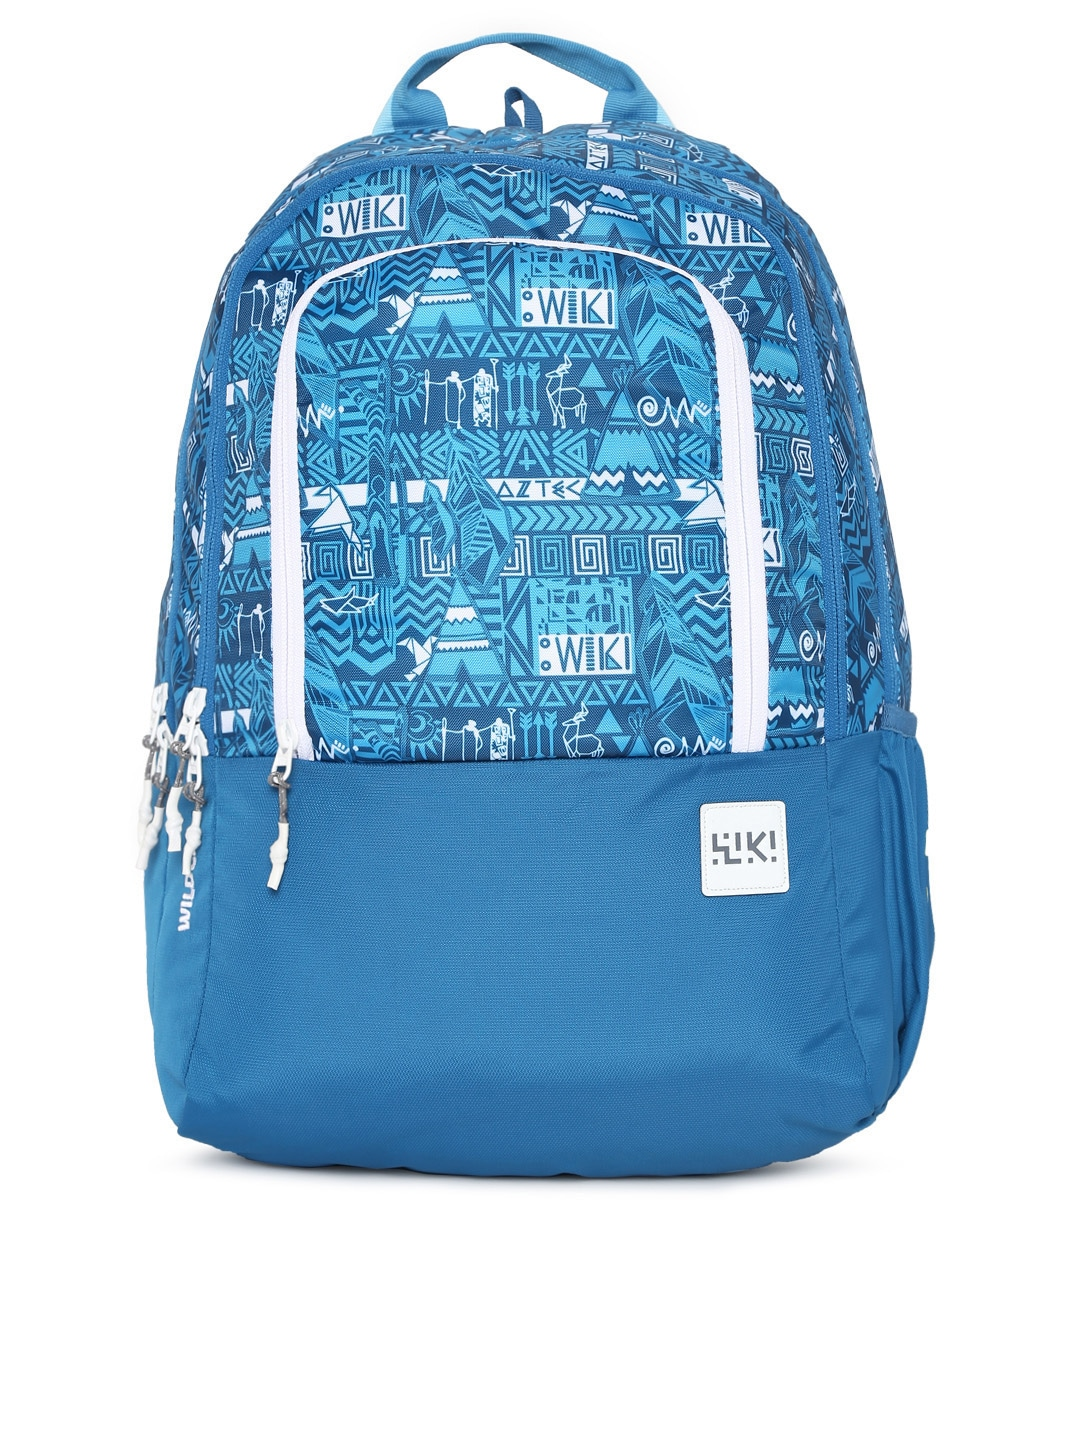 Wiki Backpacks Bags - Buy Wiki Backpacks Bags online in India cca7614cf98c5